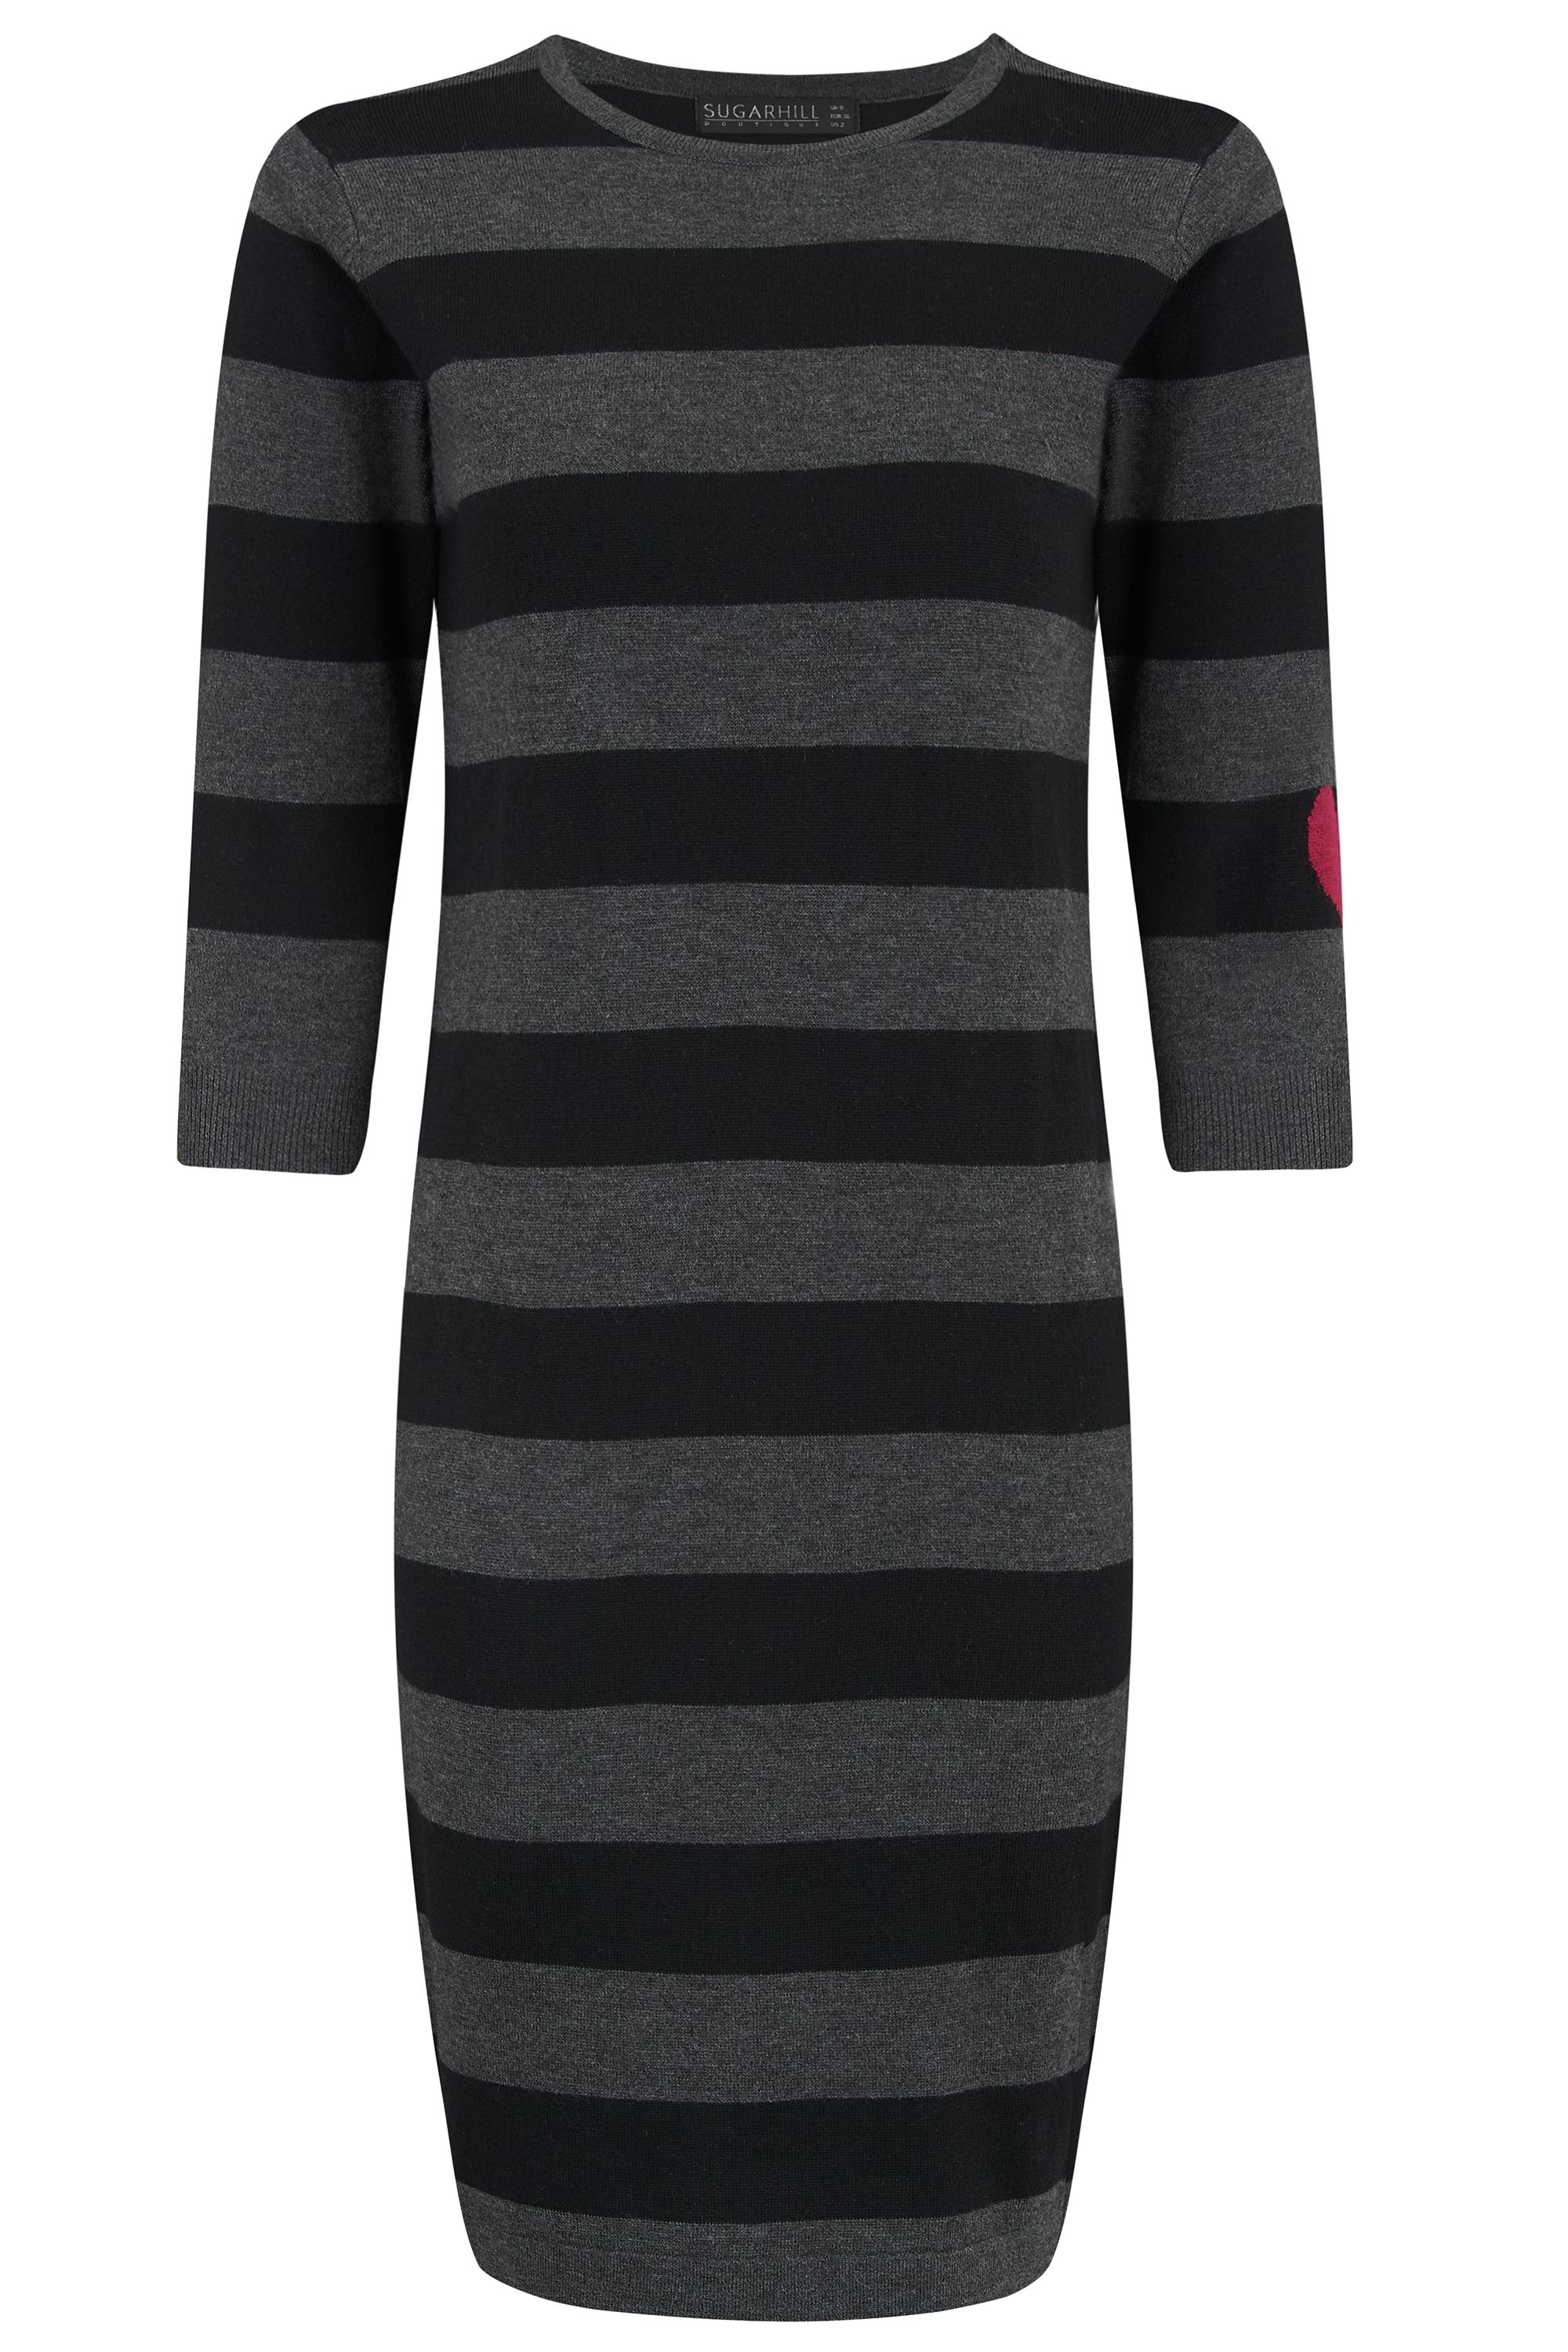 Sugarhill Boutique Stripe Knit Dress With Heart, Black